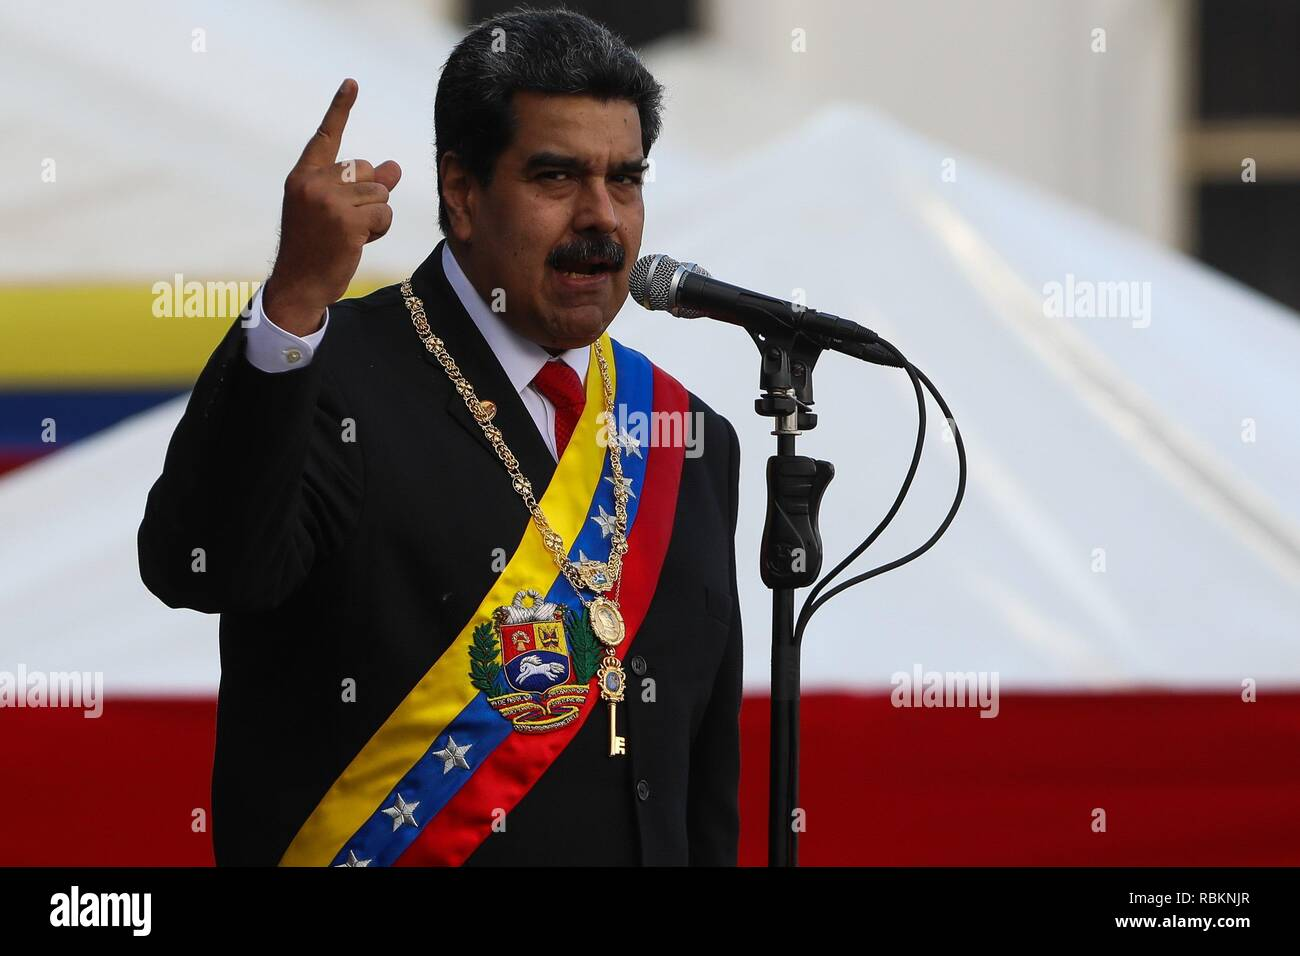 Caracas, Venezuela. 10th Jan, 2019. Venezuelan President Nicolas Maduro participates in a ceremony to swear in the Armed Forces for his second term, in Caracas, Venezuela, 10 January 2019. Maduro said he is ready for six more years in power as a 'democrat' after taking office for a second term amid wide questioning of the local opposition and a great part of the international community. Credit: Cristian Hernandez/EFE/Alamy Live News - Stock Image